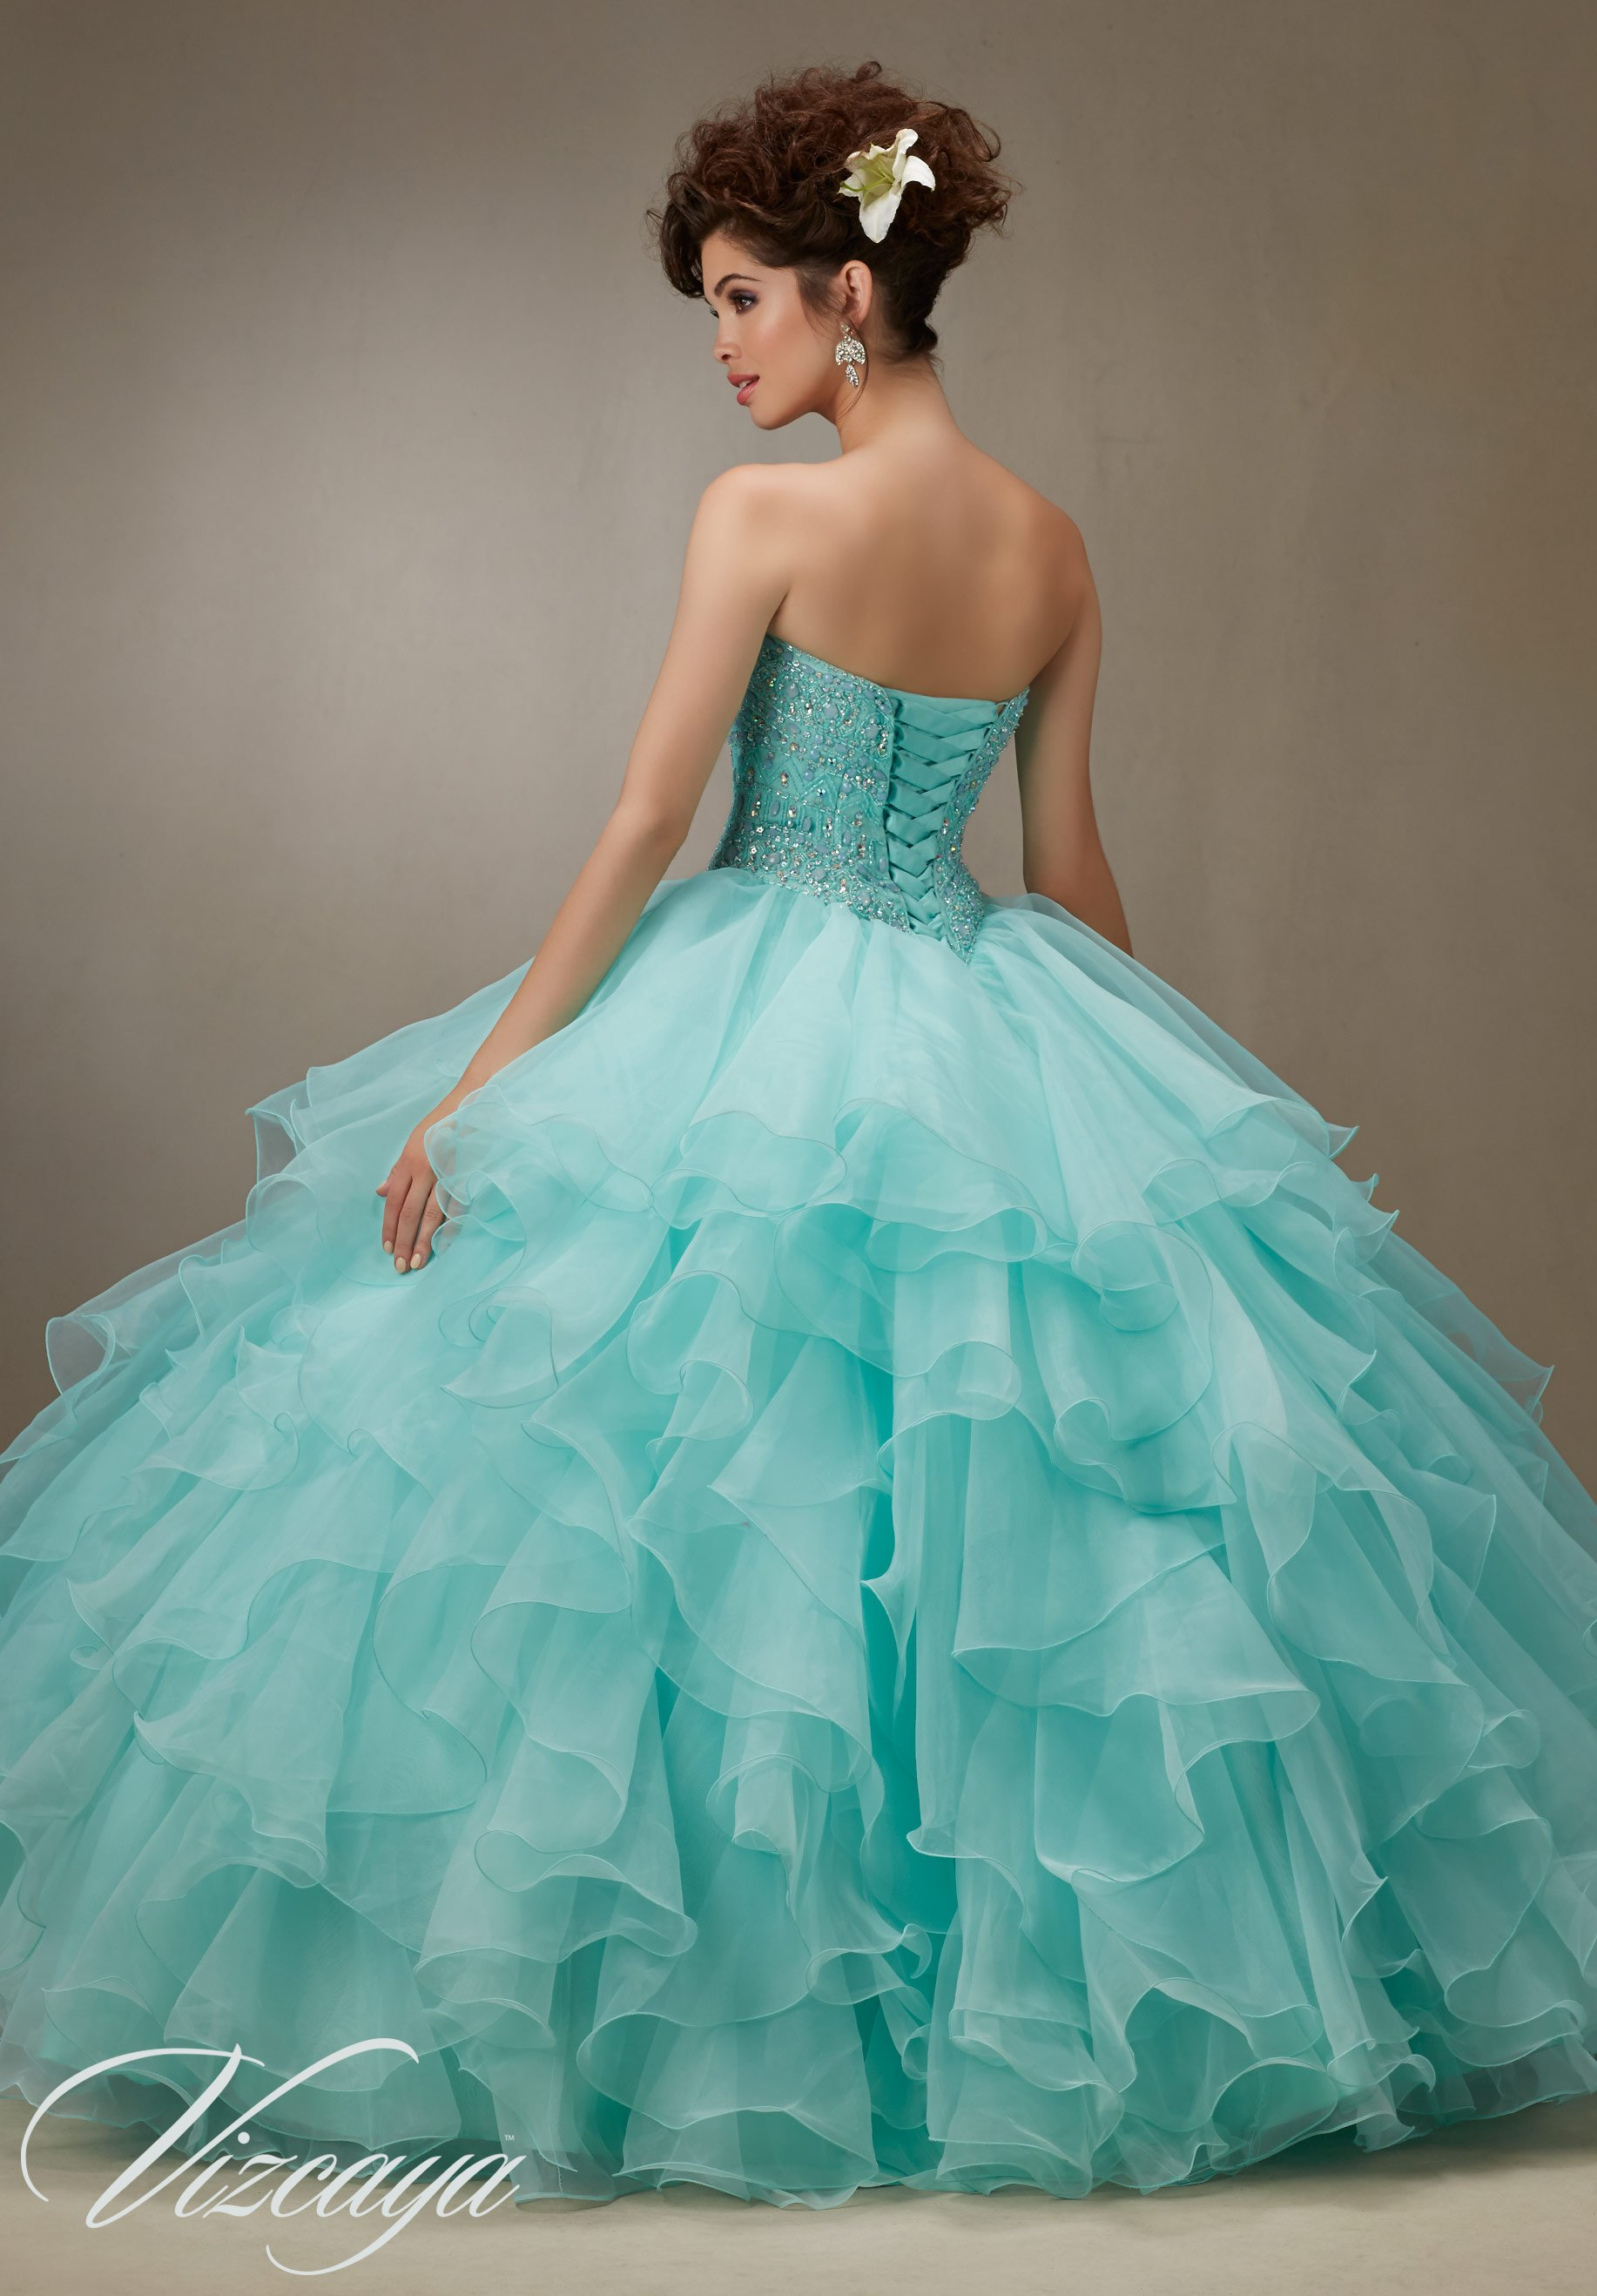 Quinceanera Gown Houston, TX